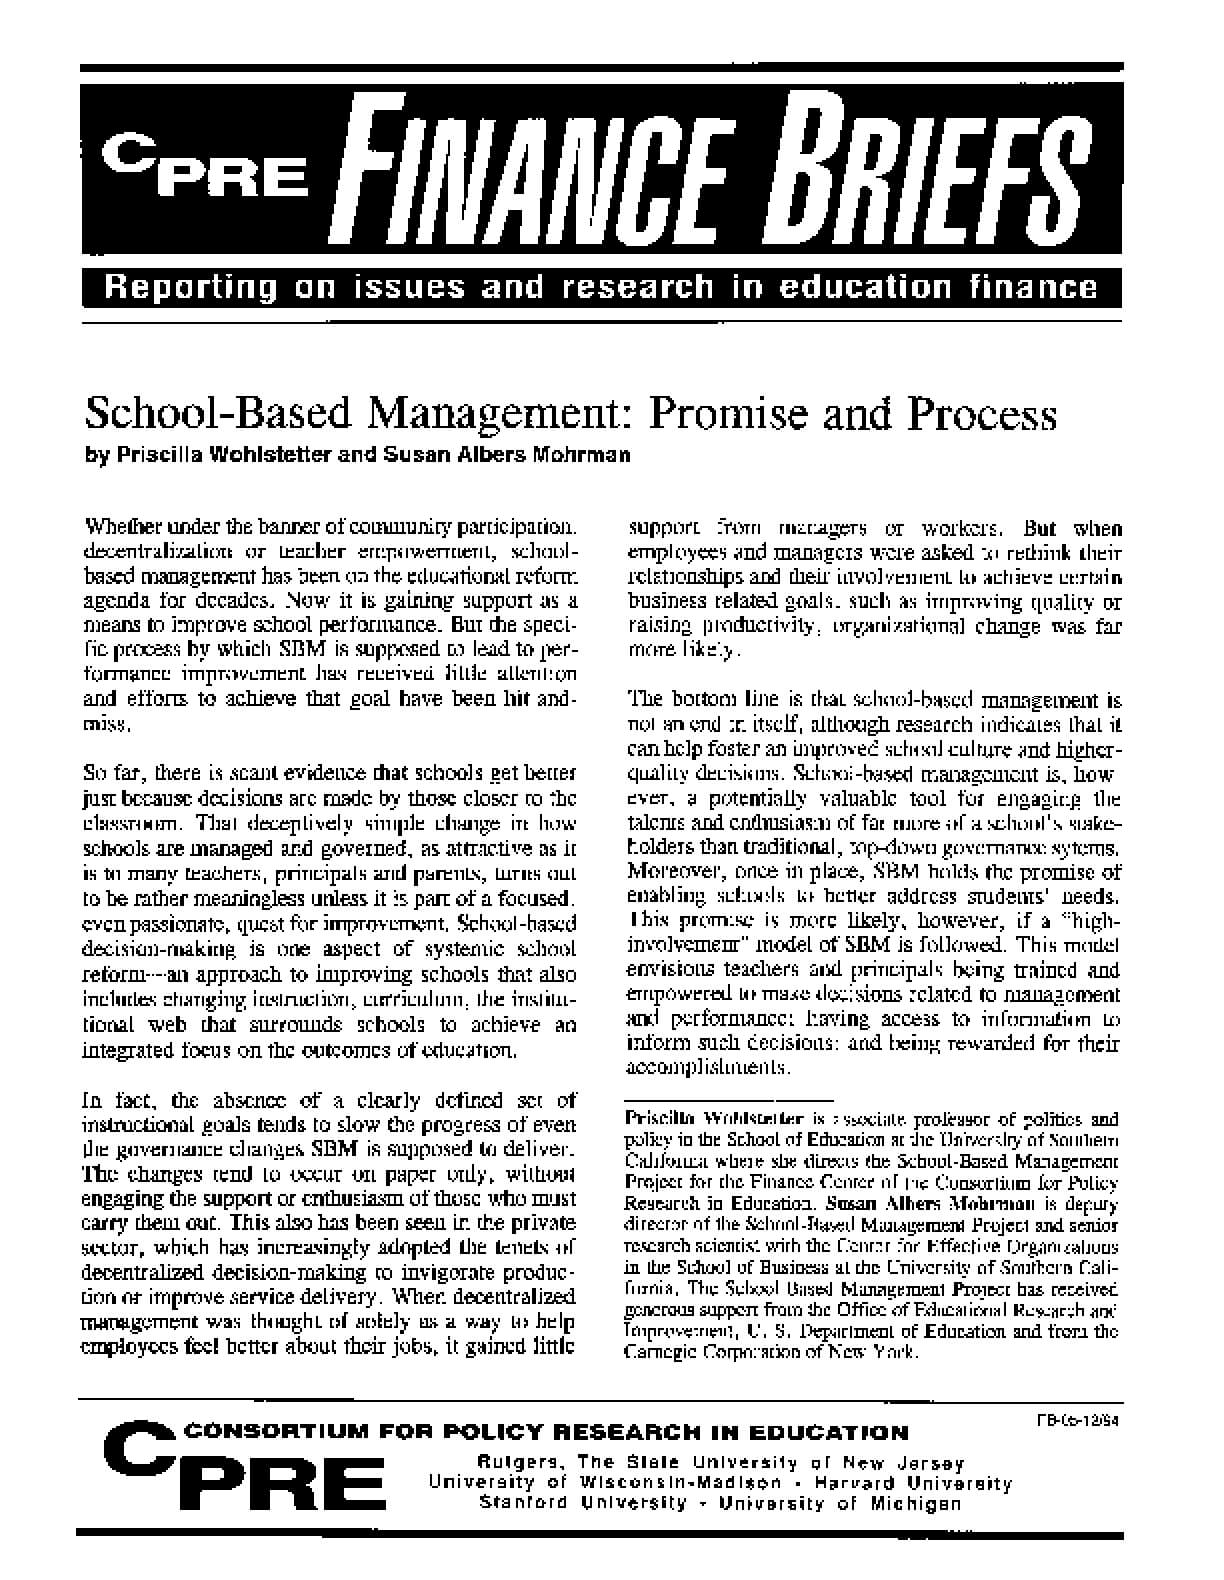 School-Based Management: Promise and Process